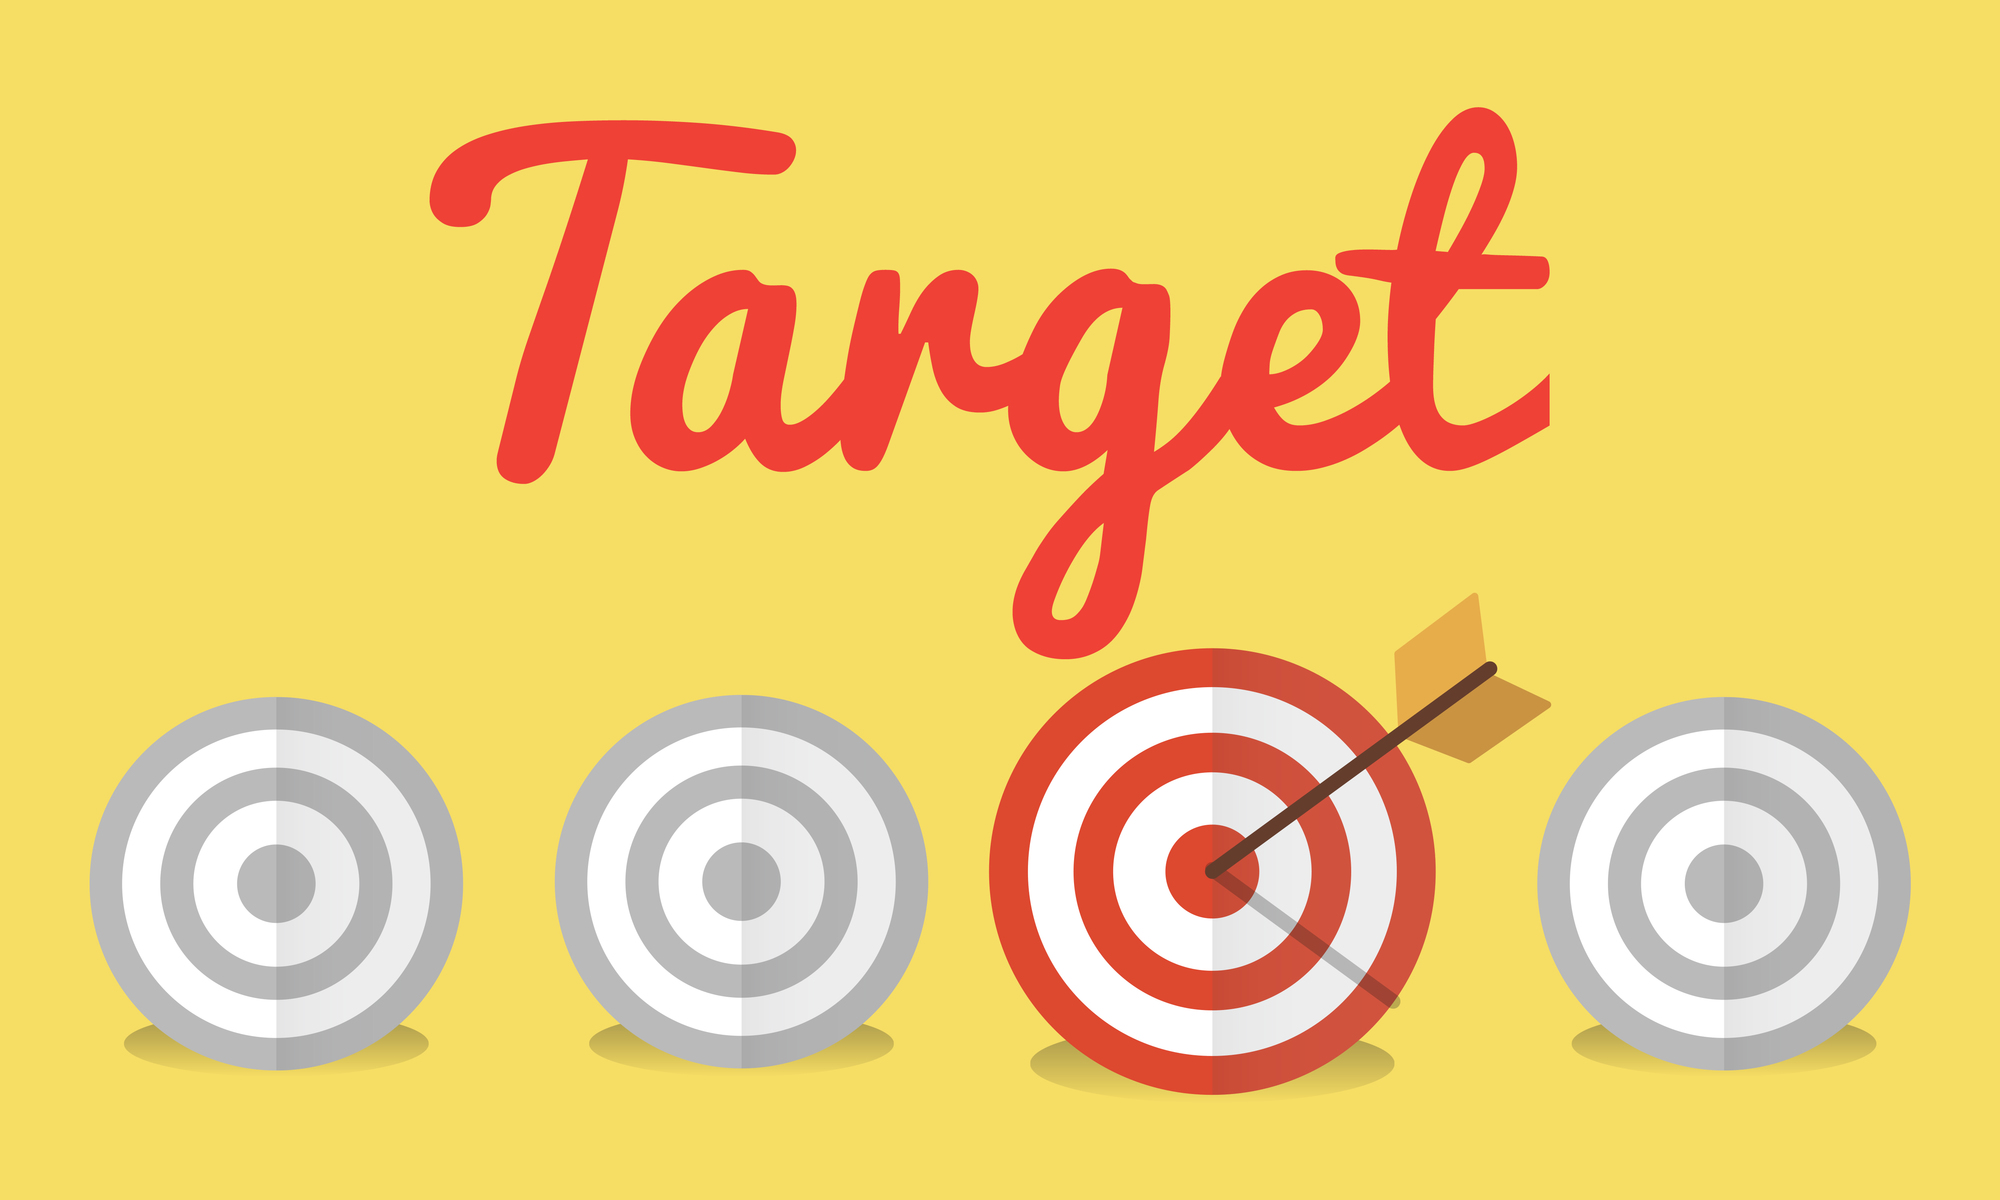 Target Goal Mission Strategy Icon Concept